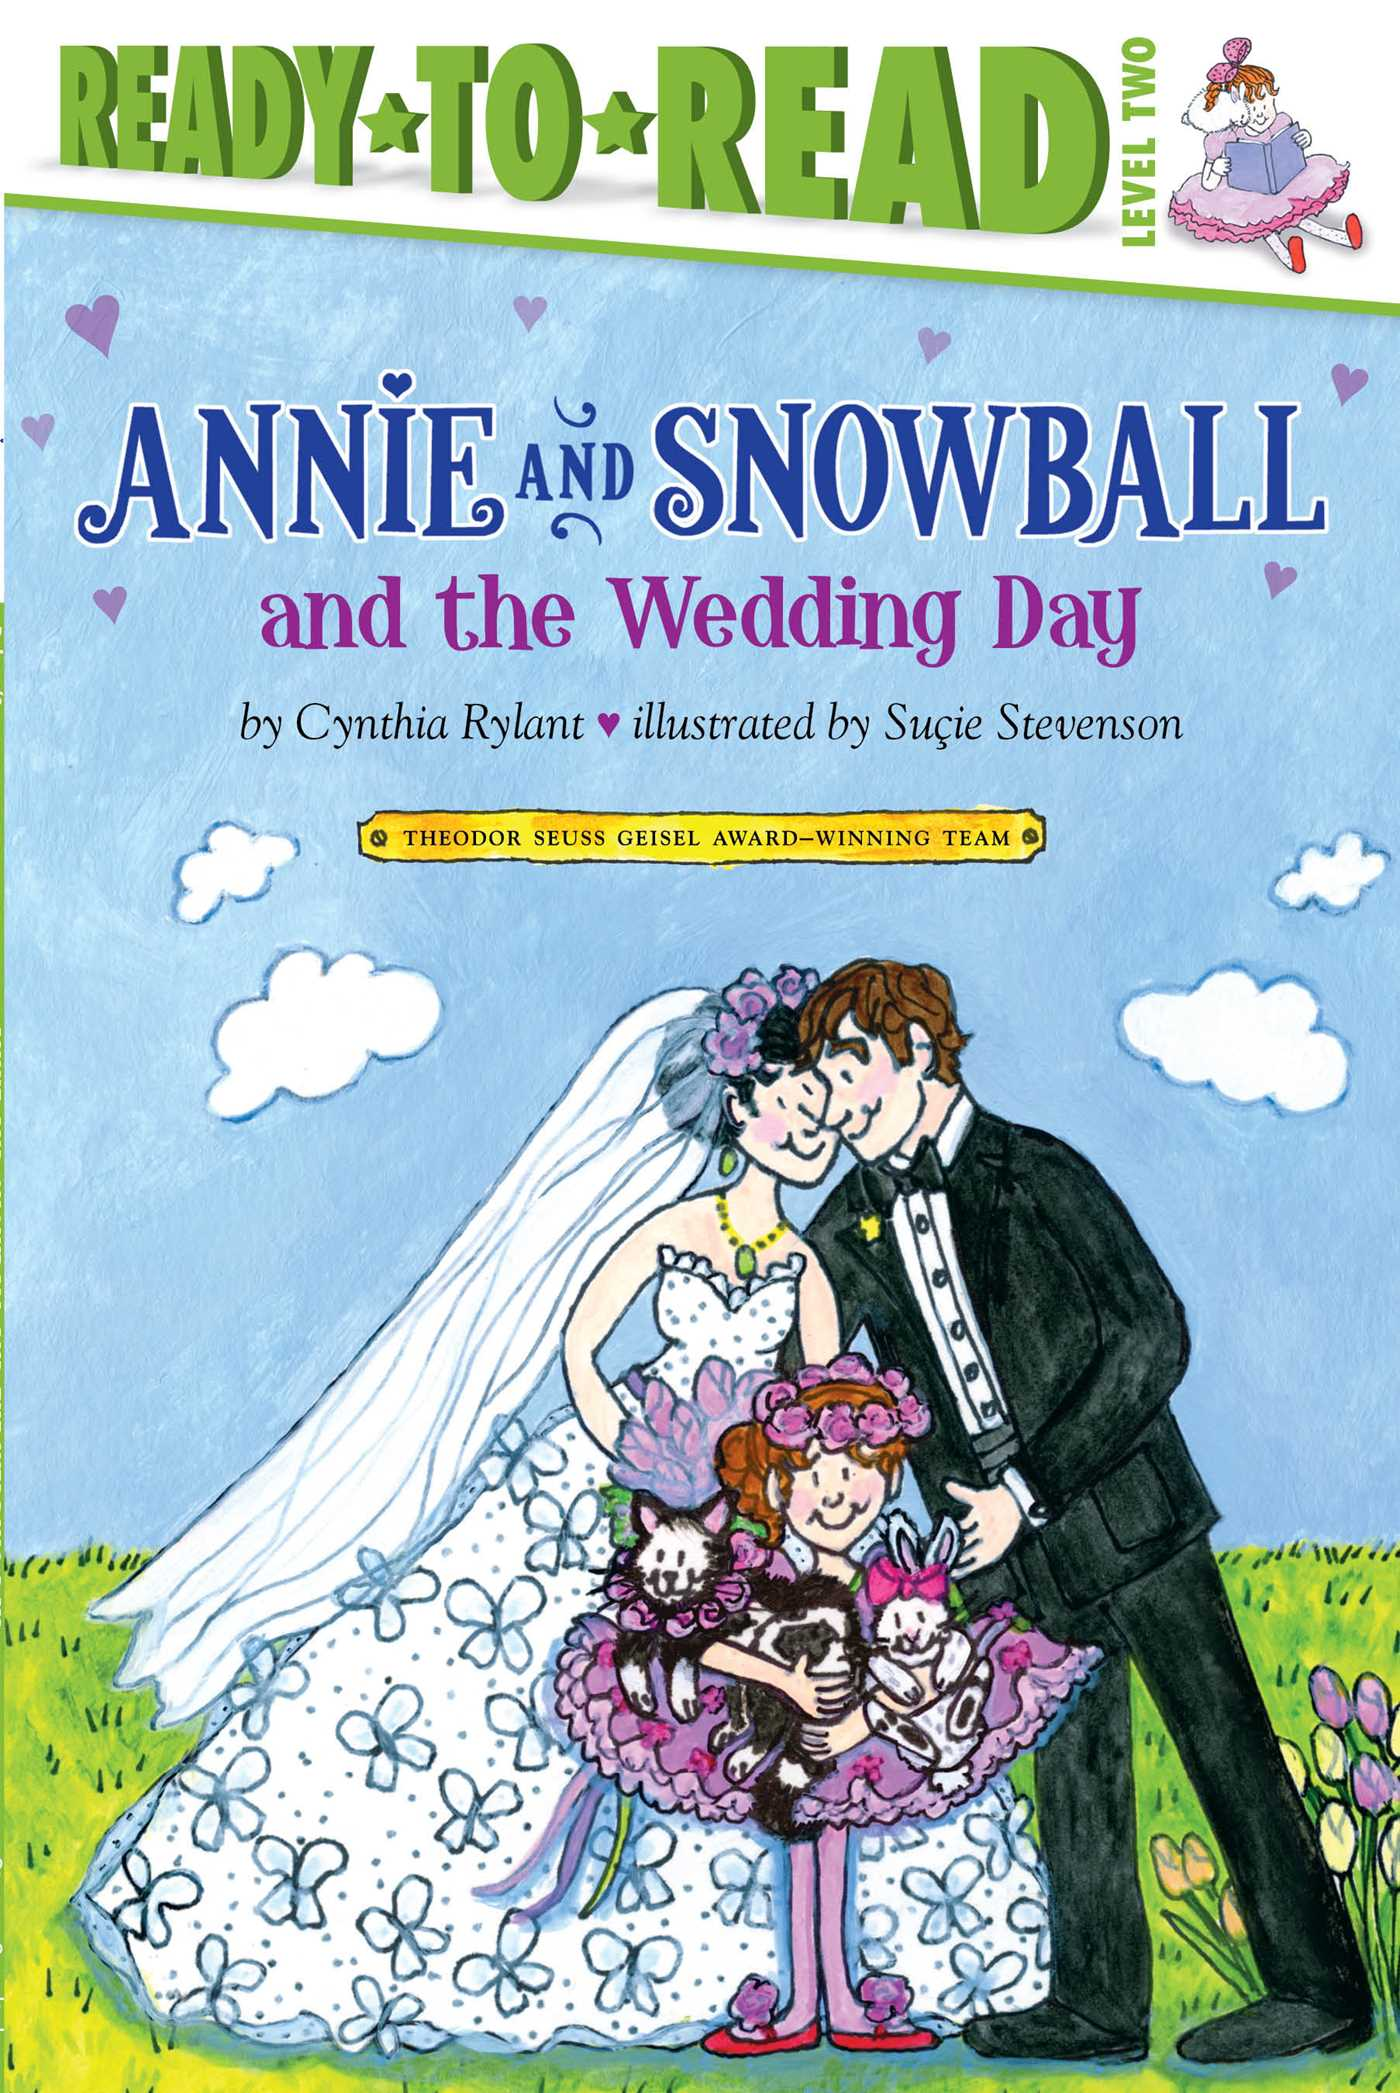 Annie-and-snowball-and-the-wedding-day-9781416974857_hr